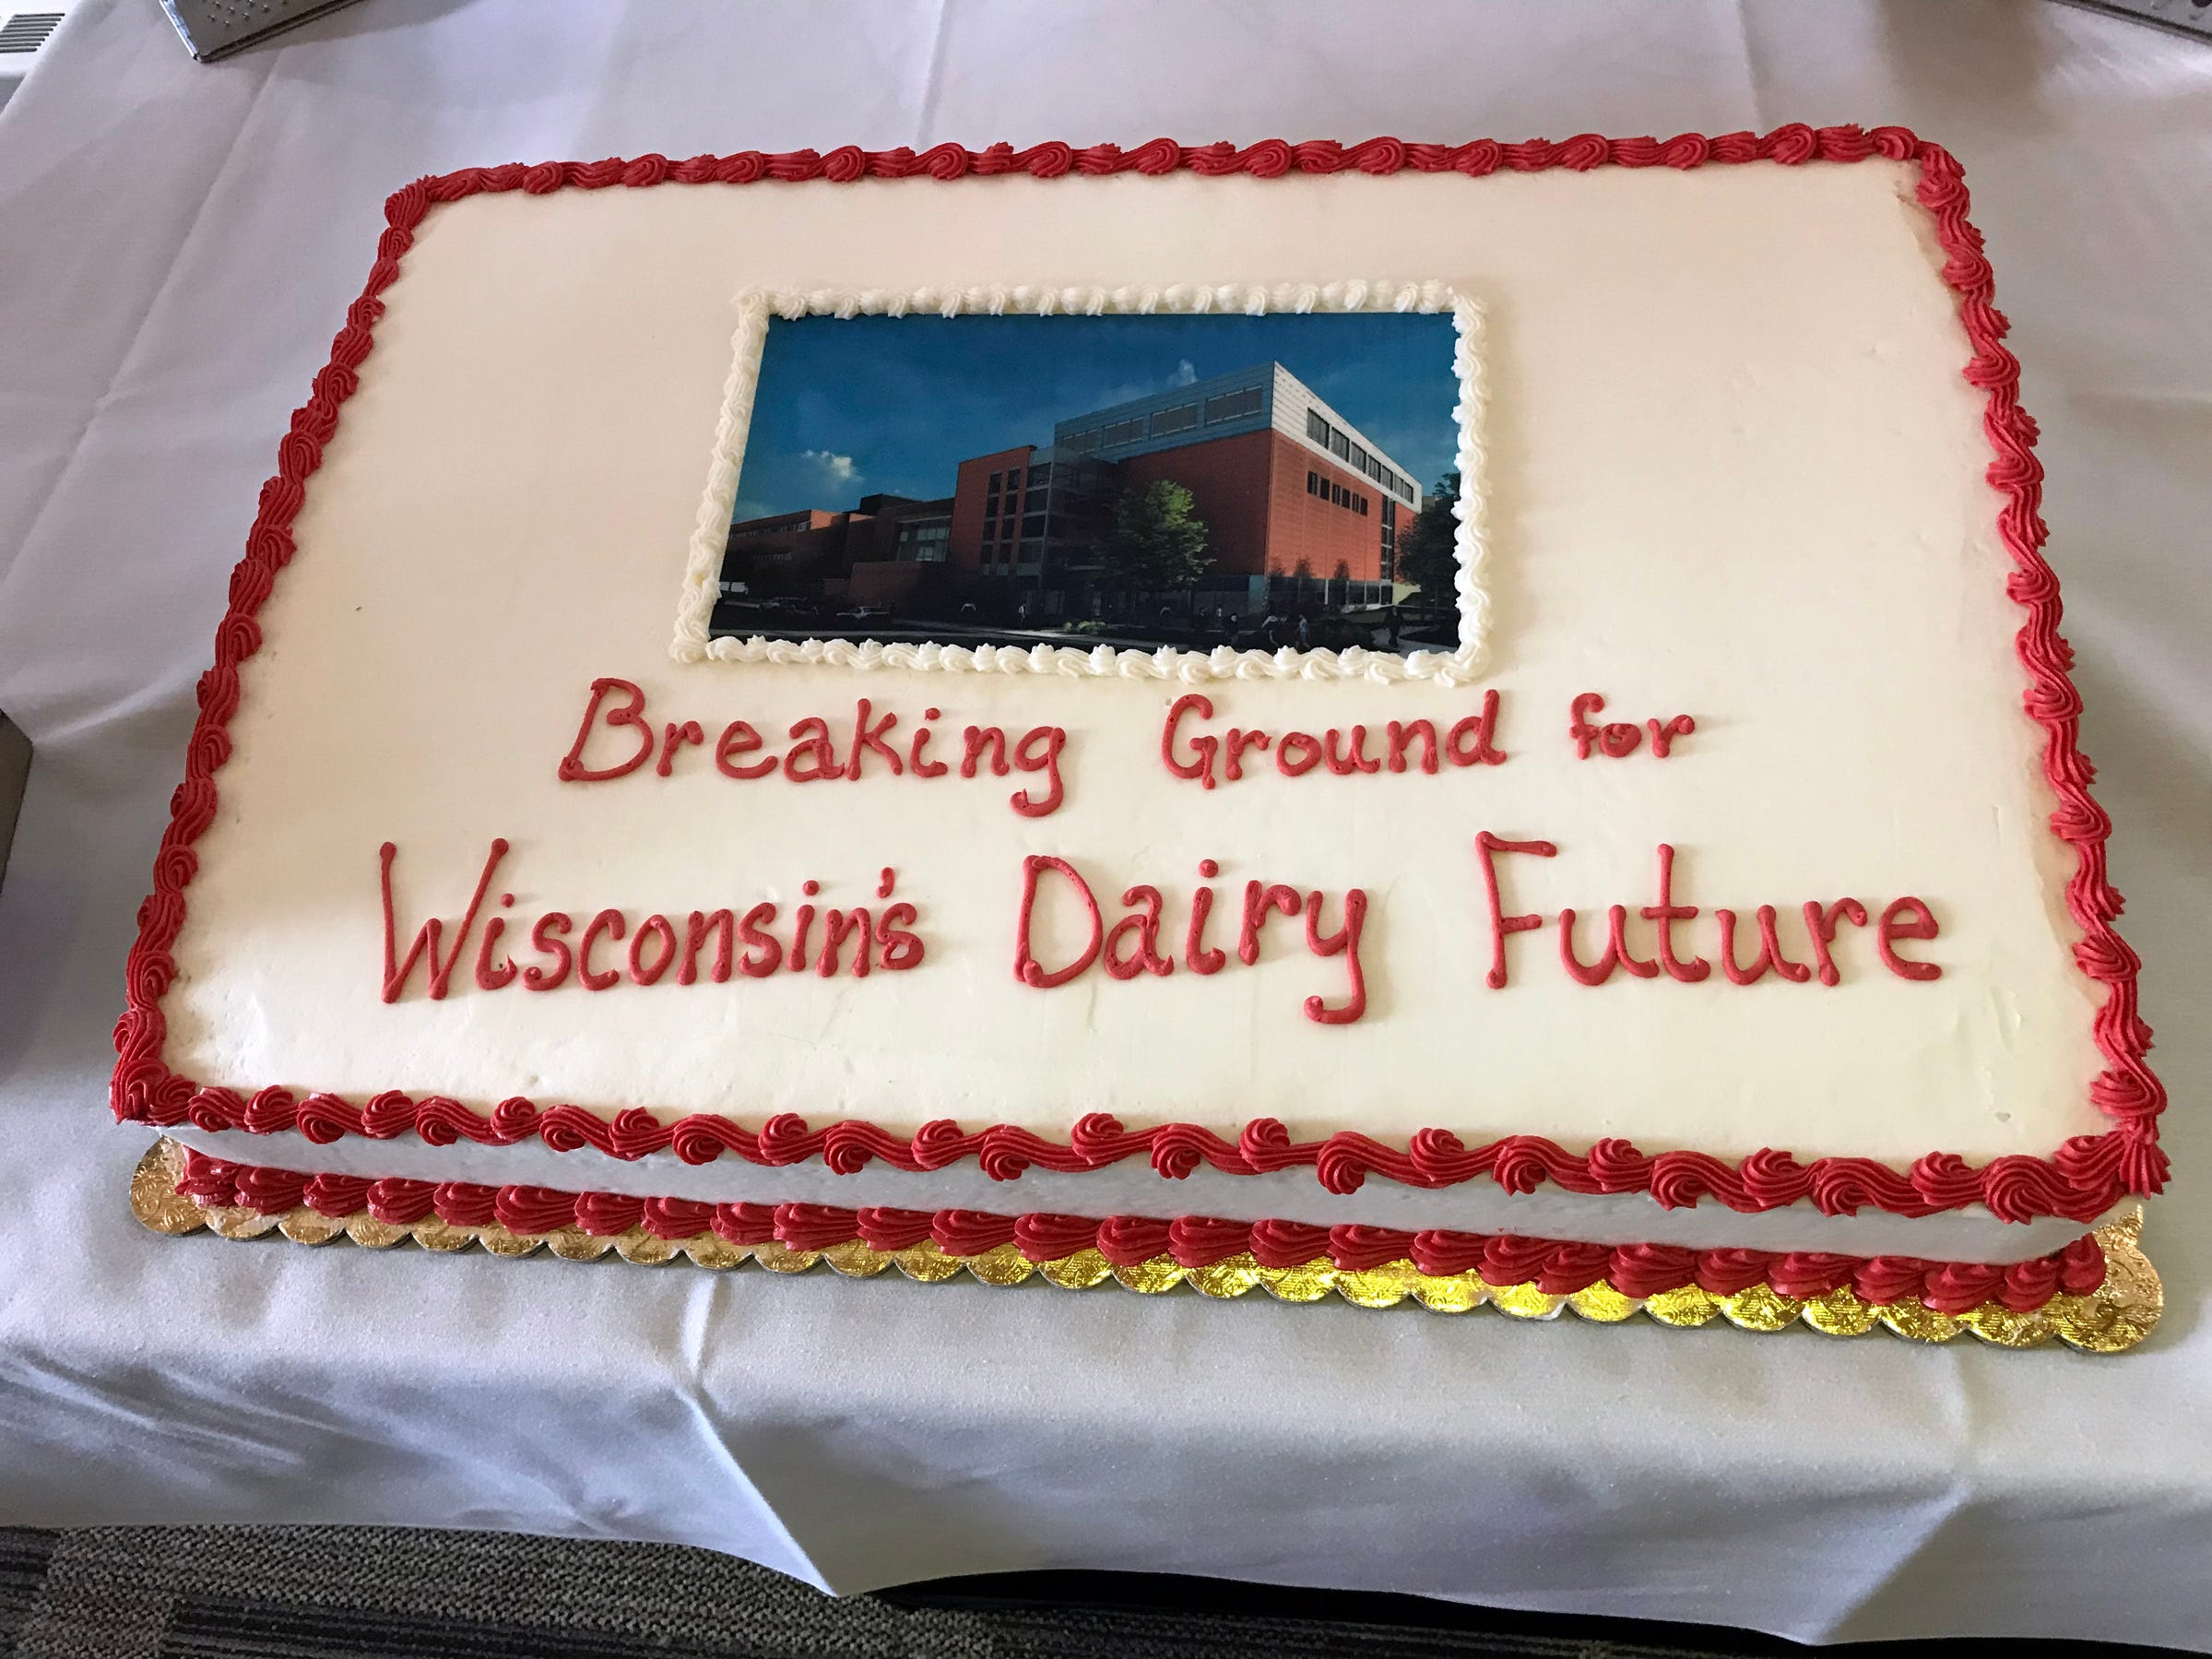 Cake was served during a celebration event to mark the launch of a construction and renovation project for UW-Madison's Babcock Hall Dairy Plant and Center for Dairy Research in the Lake Mendota Room of Dejope Hall on Sept. 7.